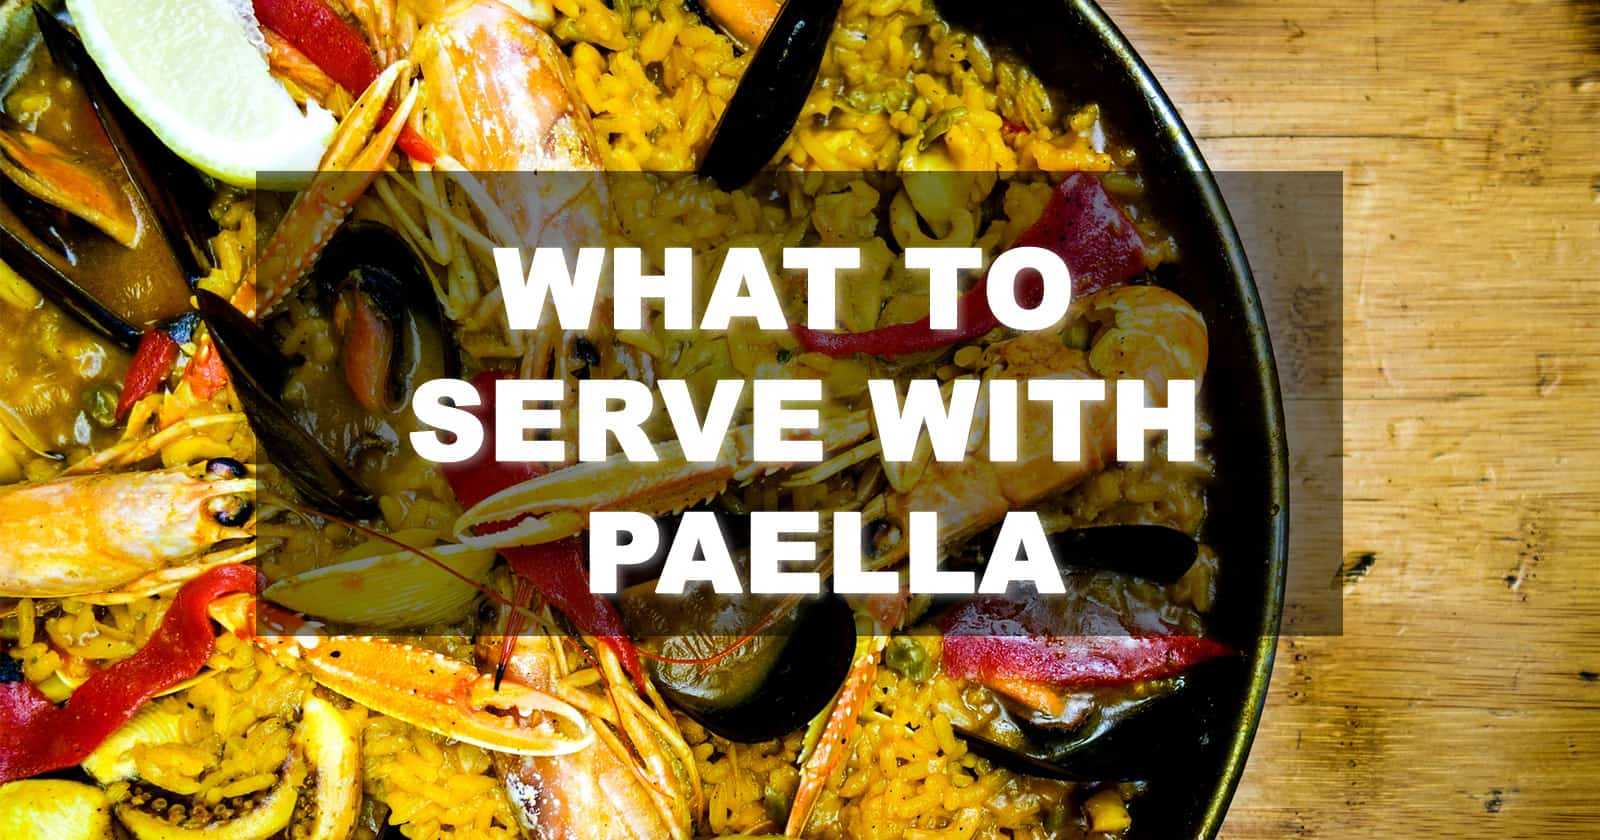 what to serve with paella